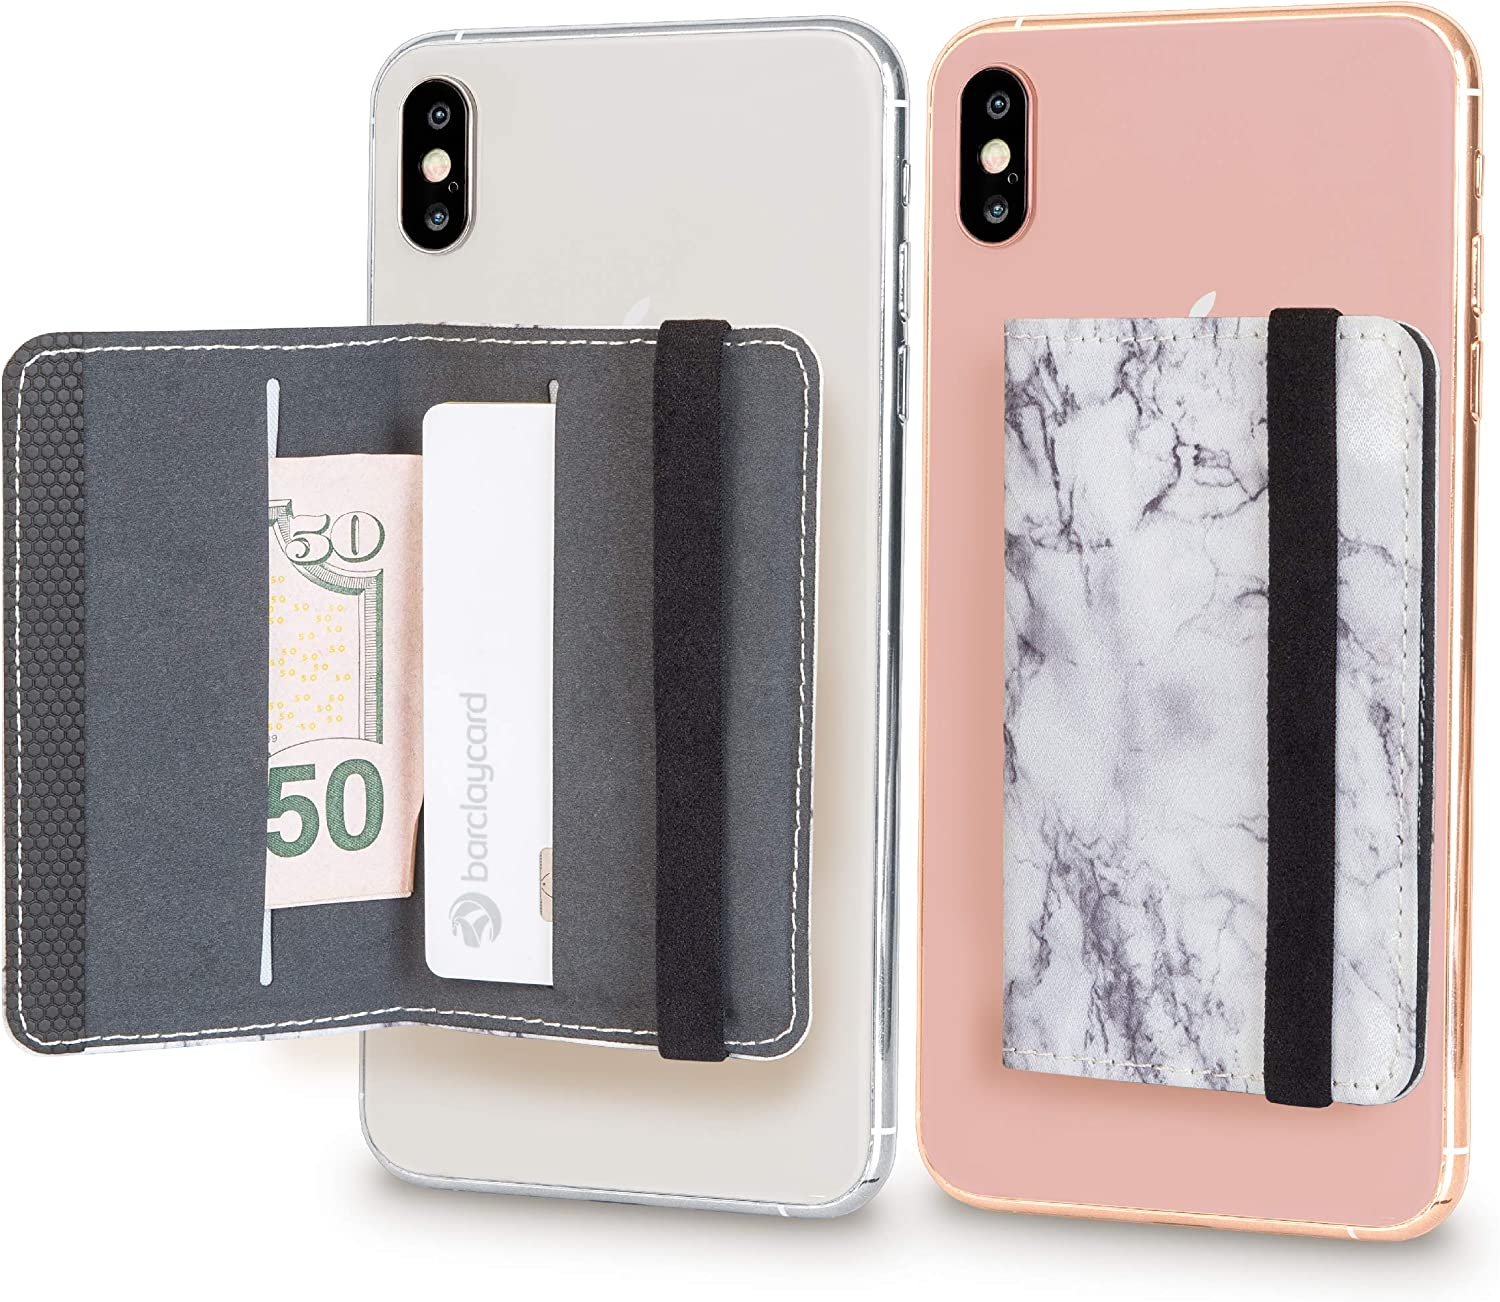 Cell Phone Card Holder Stick on Wallet Phone Pocket for iPhone, Android and All Smartphones with Strap (White Marble)